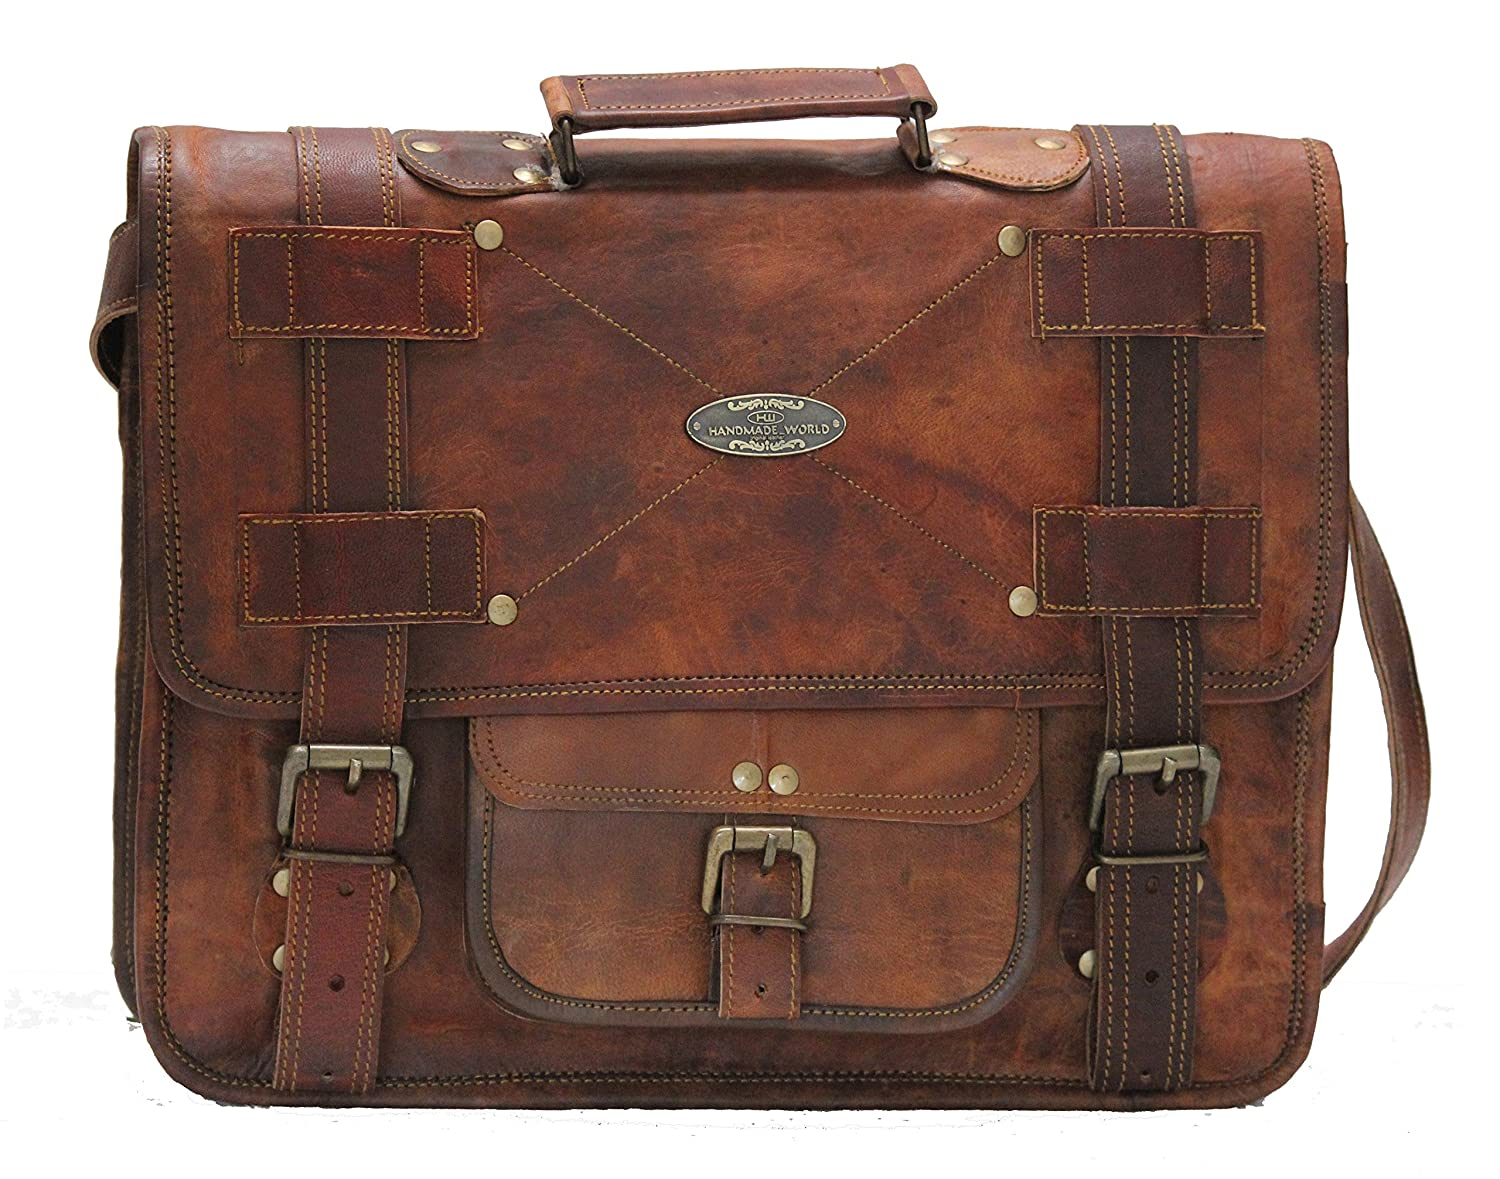 3abf5532aa Amazon.com: Handmade World Leather Messenger Bags for Men Women Mens  Briefcase Laptop Bag Best Computer Shoulder Satchel School Distressed Bag  (11